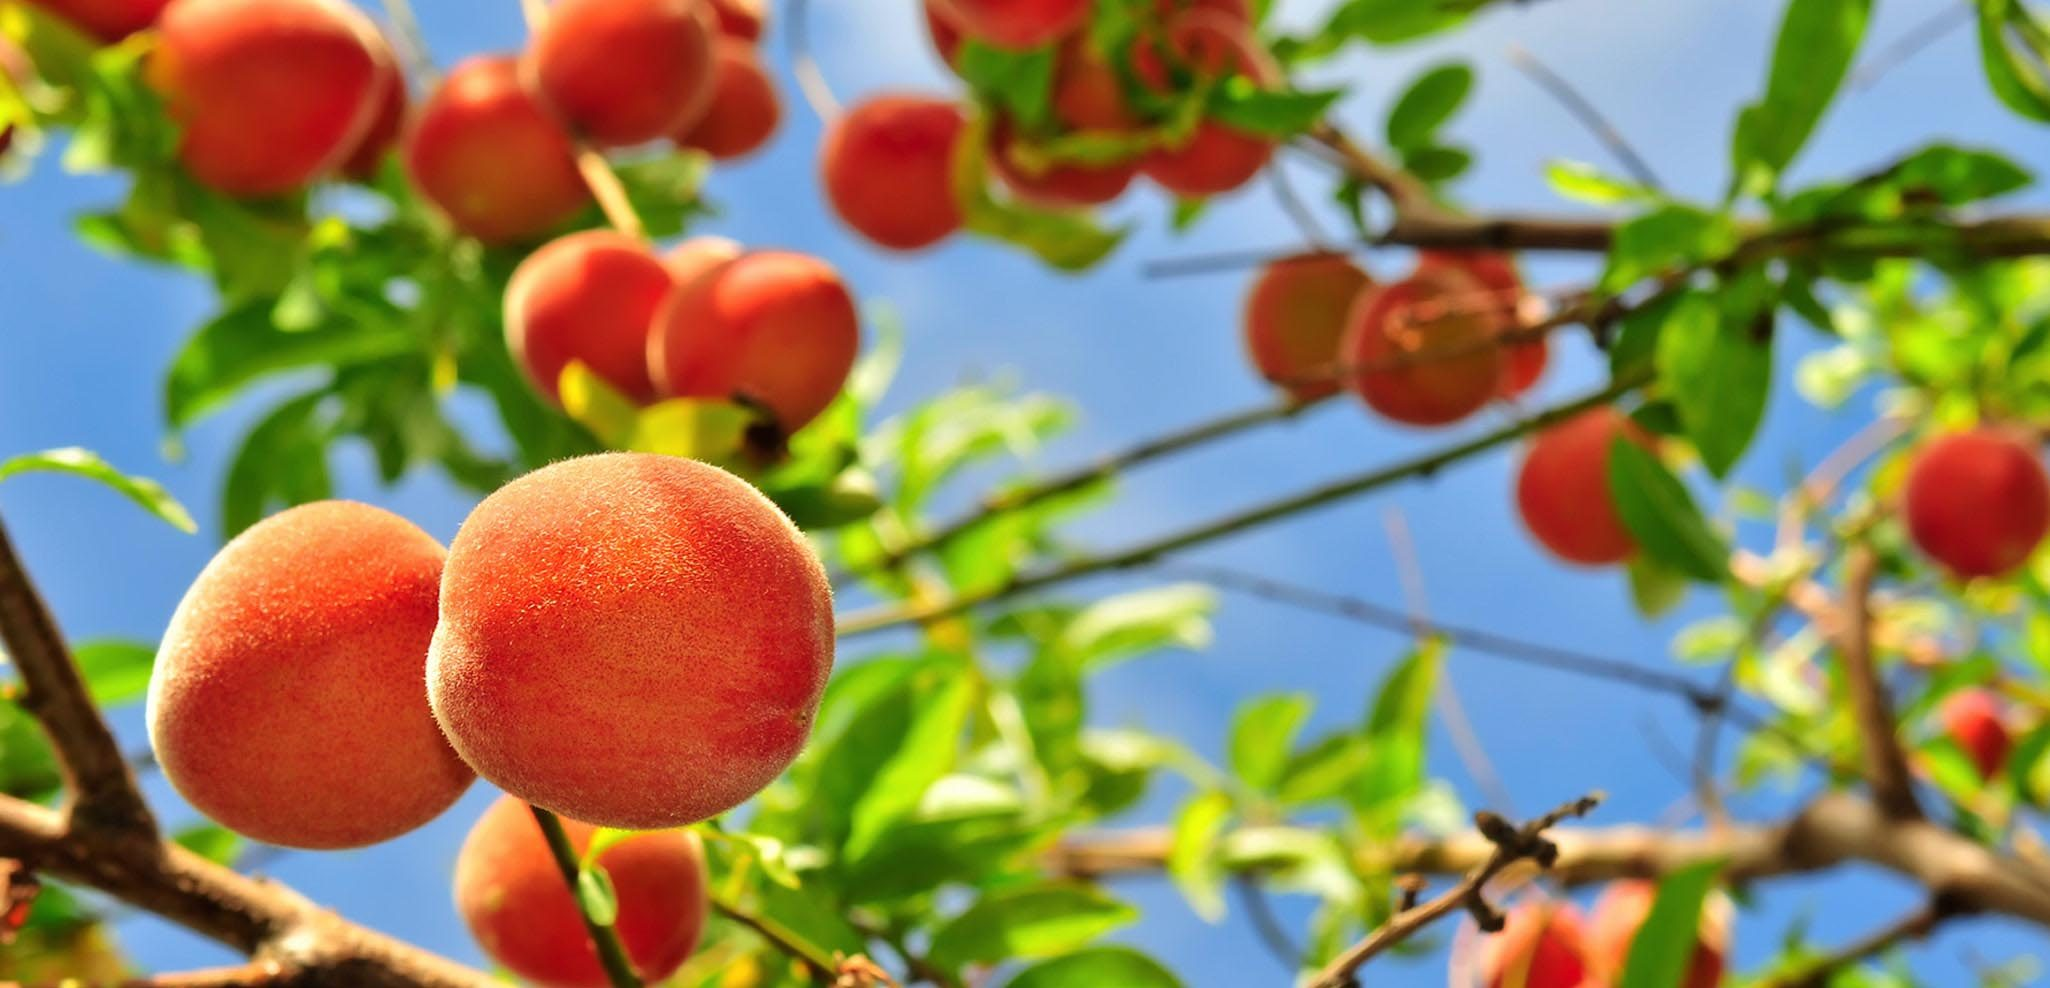 You can ripen peaches by placing them in a brown paper bag for two to three days.